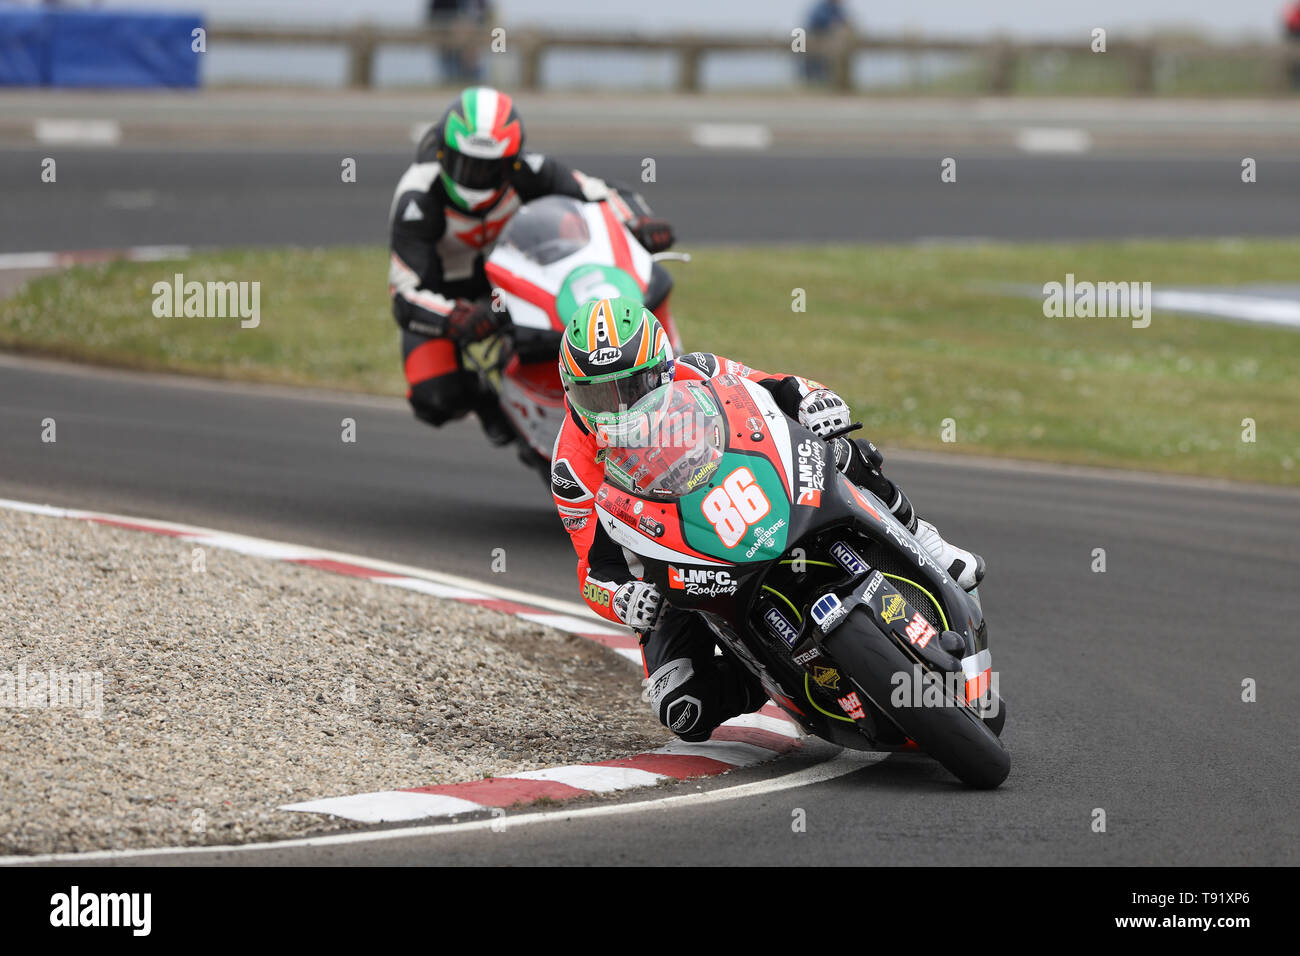 Portrush, Northern Ireland. 16th May, 2019. International North West 200 Motorcycle road racing, Thursday practice and evening racing; Derek McGee goes fastest on the KMR Kawasaki during the SuperTwins qualifying session Credit: Action Plus Sports/Alamy Live News - Stock Image